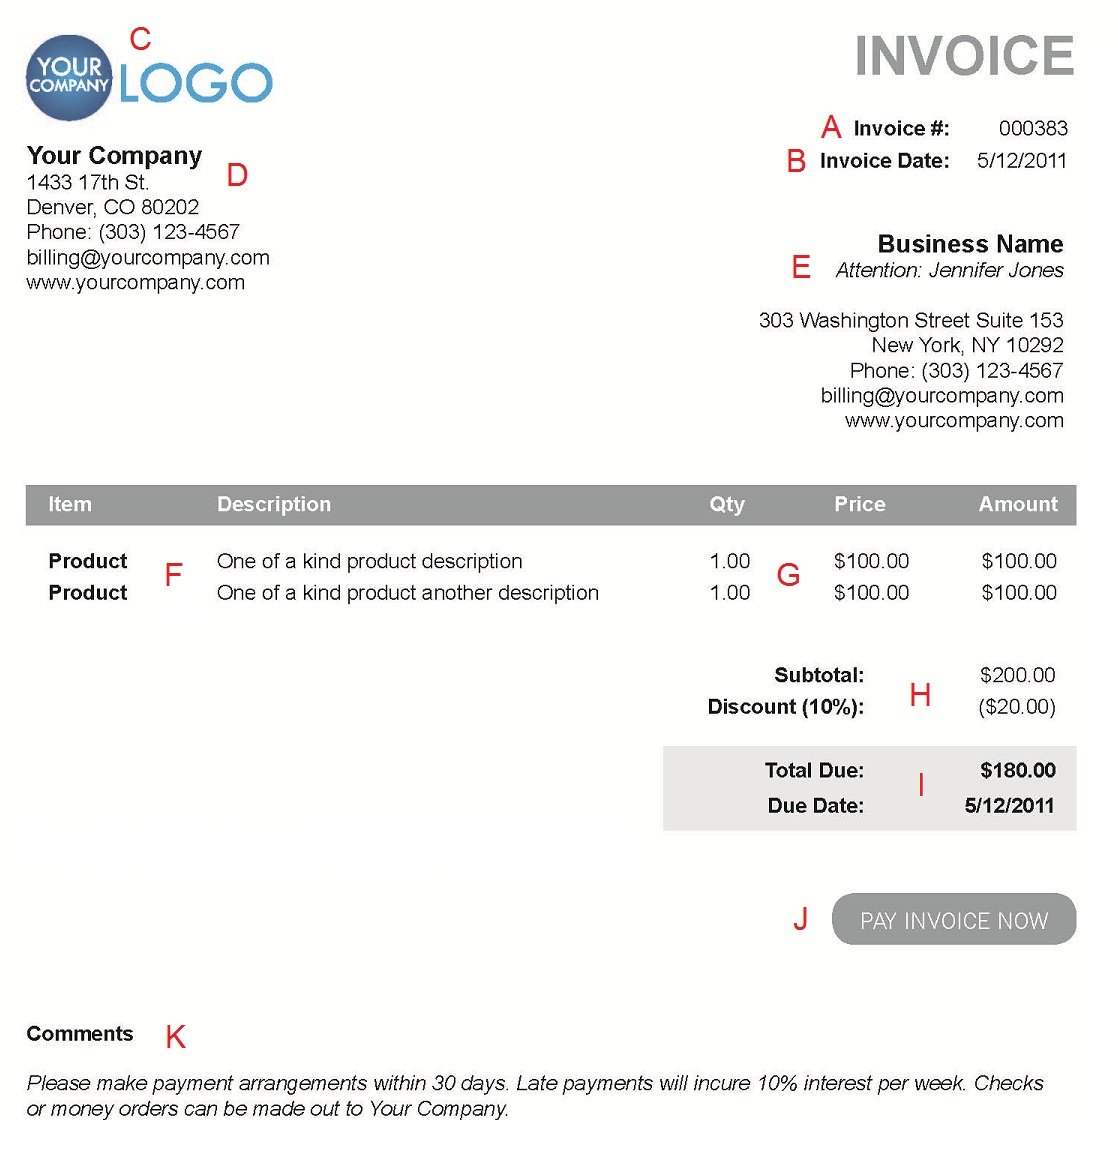 Coachoutletonlineplusus  Terrific The  Different Sections Of An Electronic Payment Invoice With Fair A  With Astounding Einvoicing Solutions Also Microsoft Free Invoice Template In Addition Verizon Invoice And Contractor Invoice Template Free As Well As What Is A Purchase Invoice Additionally Canadian Custom Invoice From Paysimplecom With Coachoutletonlineplusus  Fair The  Different Sections Of An Electronic Payment Invoice With Astounding A  And Terrific Einvoicing Solutions Also Microsoft Free Invoice Template In Addition Verizon Invoice From Paysimplecom